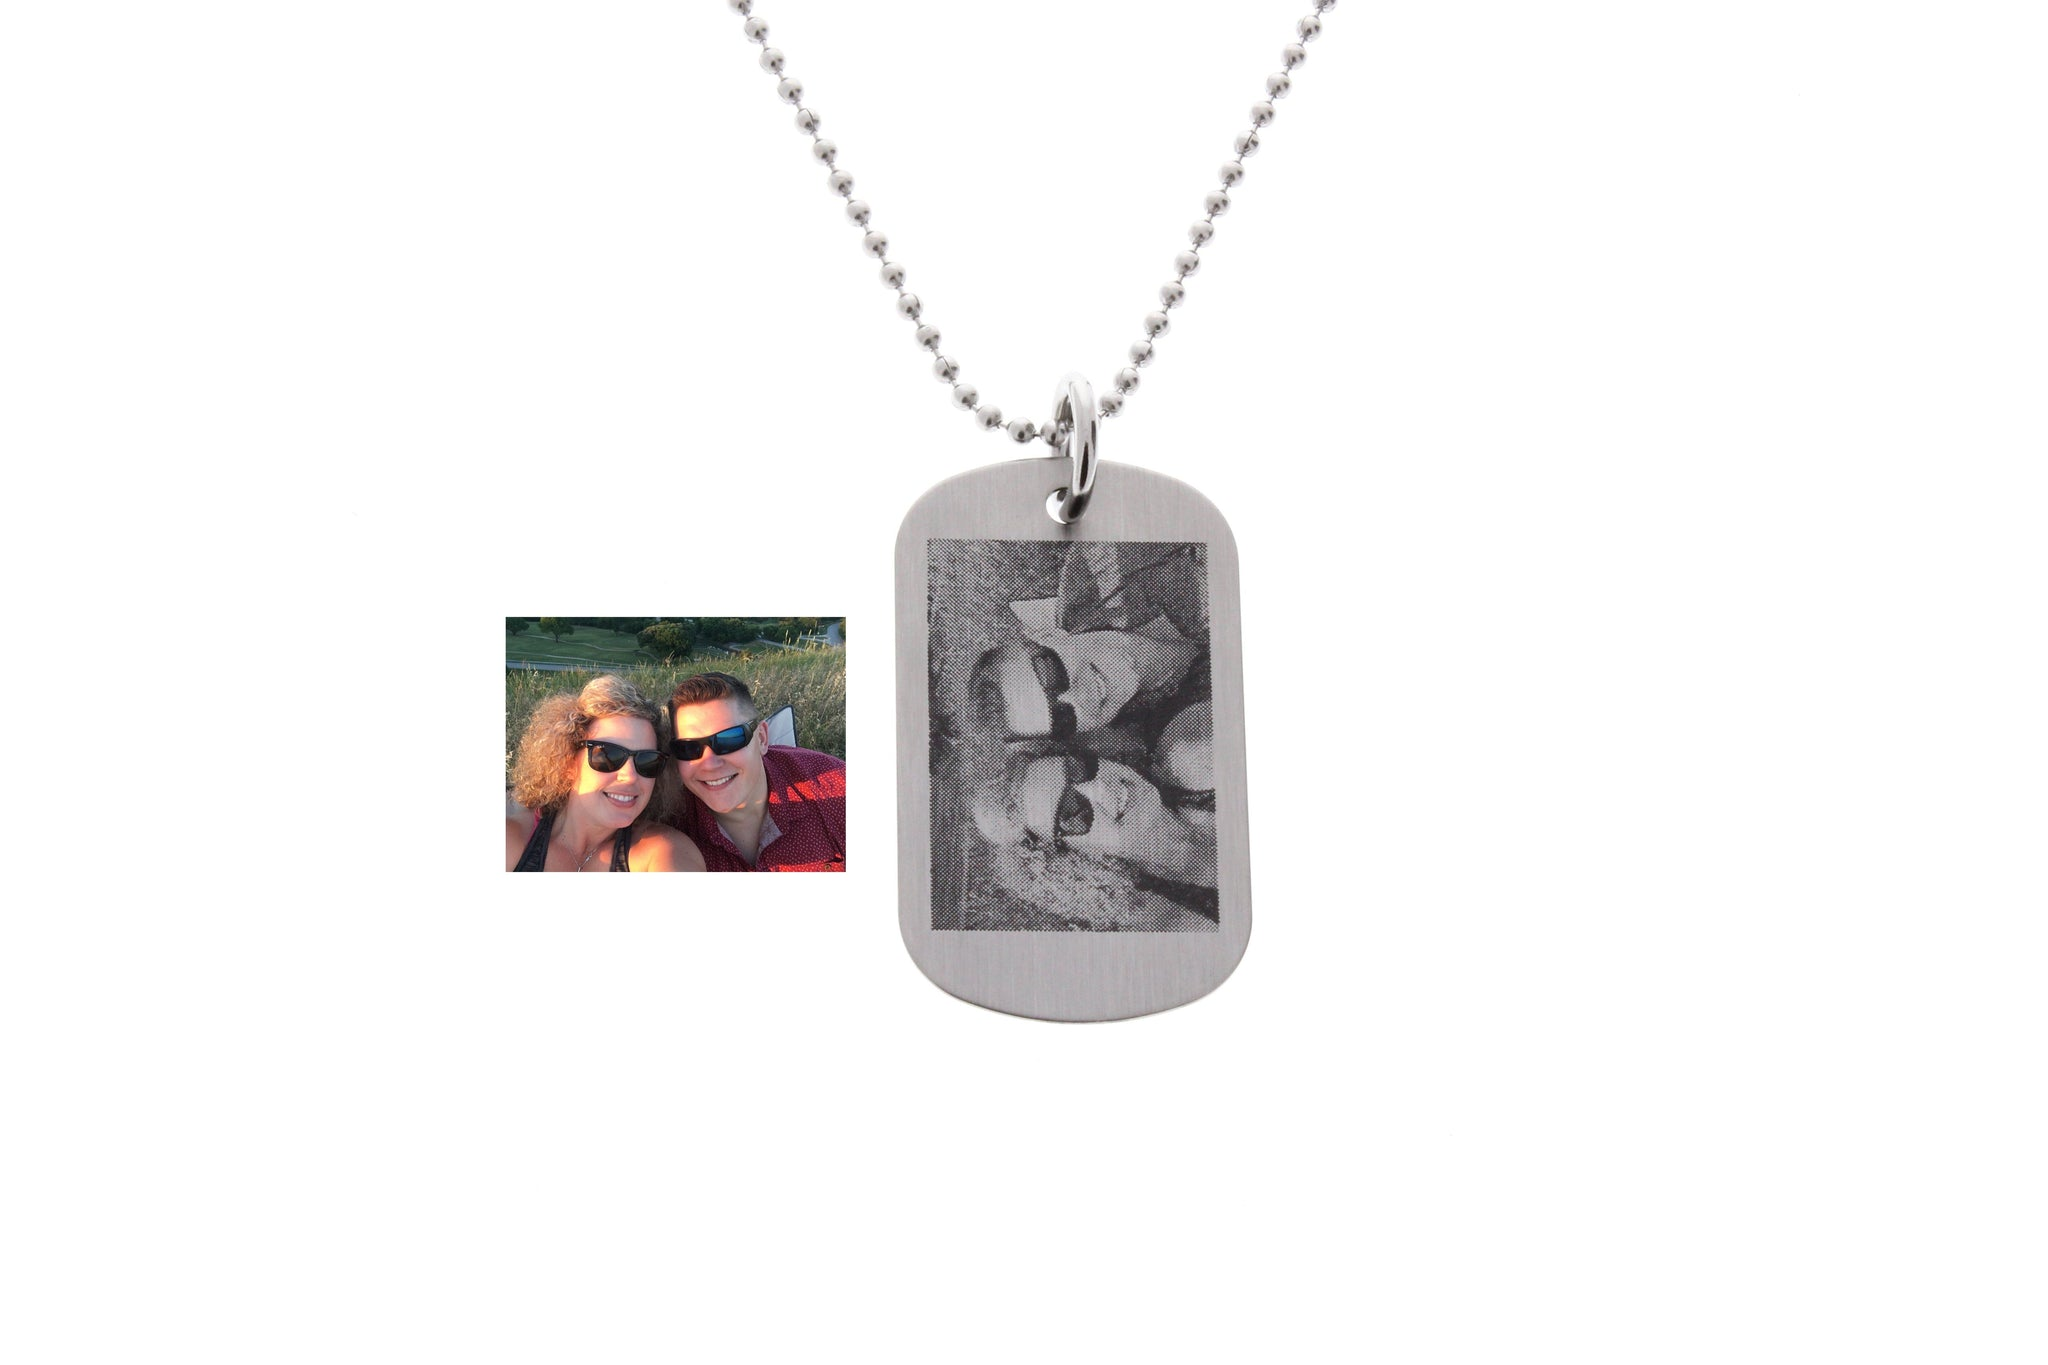 Photograph Necklace Dog Tag